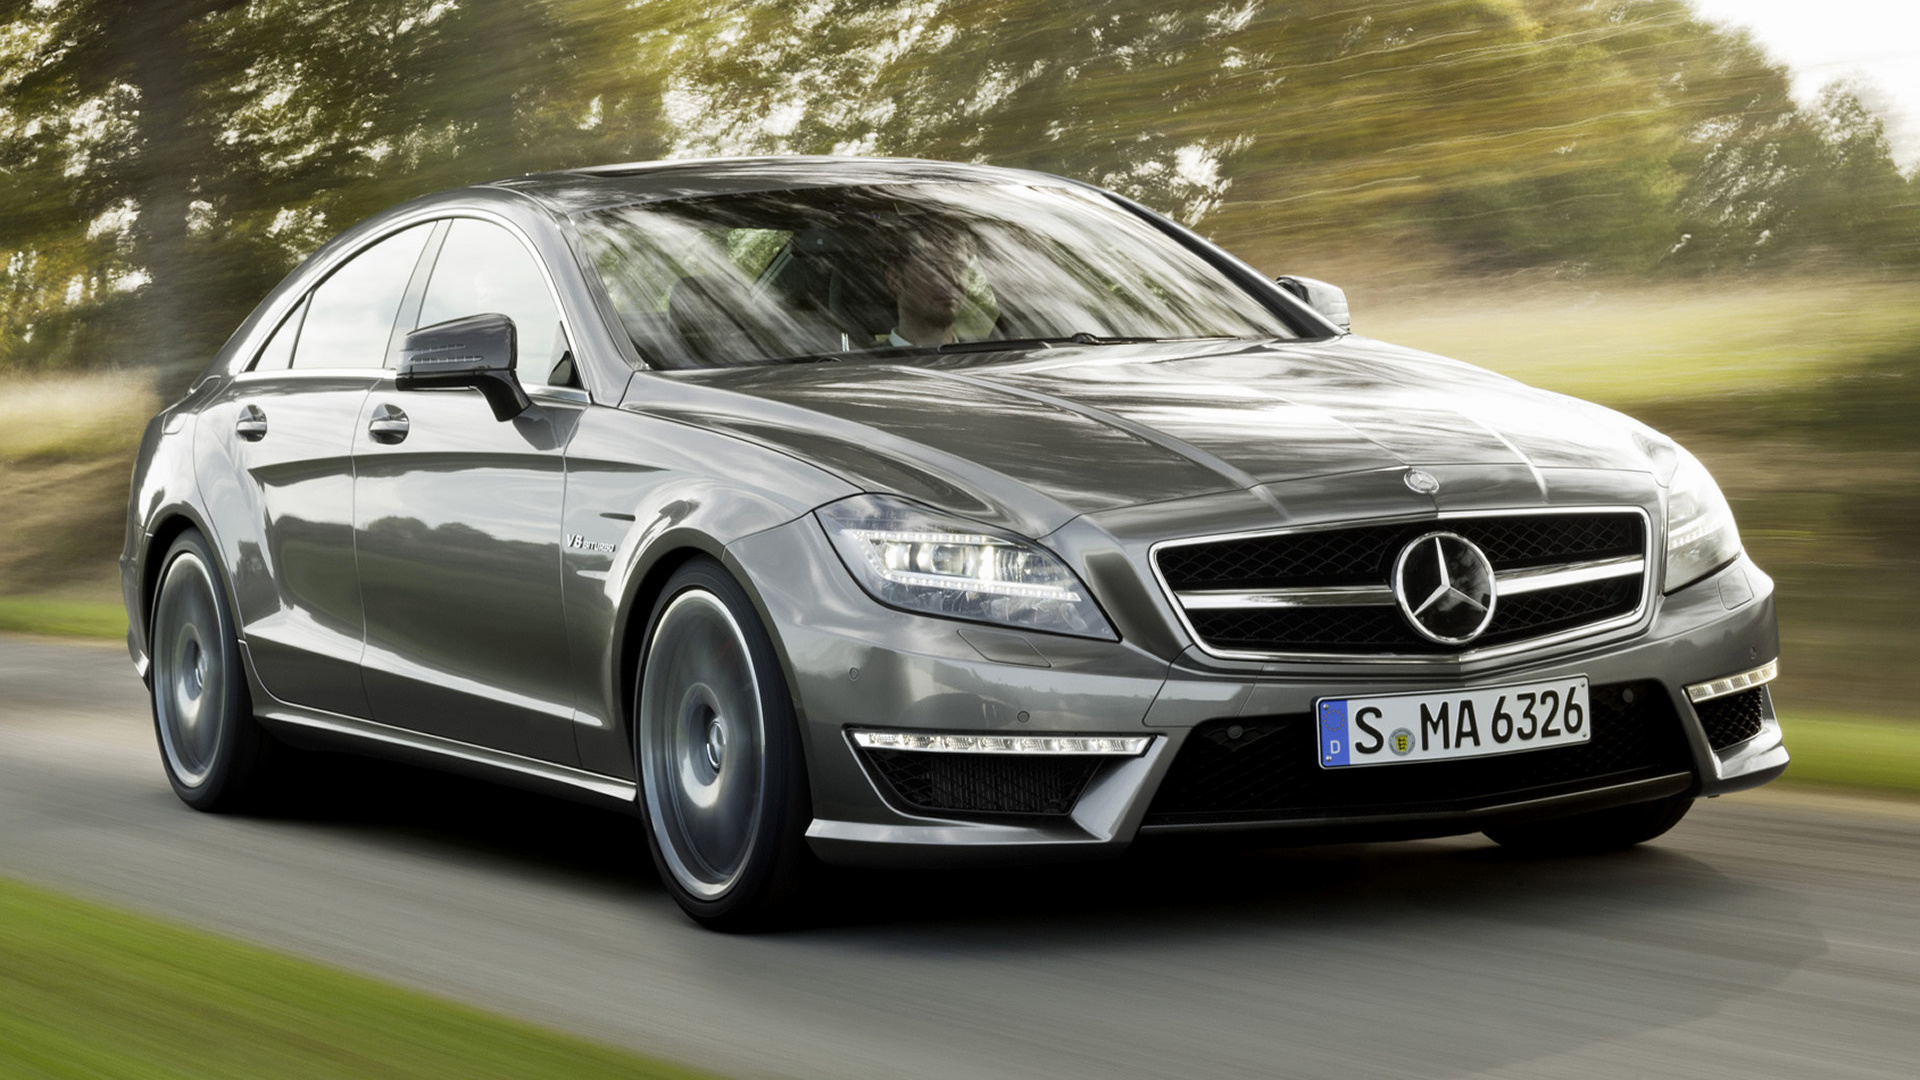 mercedes benz cls 63 amg 2010 wallpapers and hd images. Black Bedroom Furniture Sets. Home Design Ideas